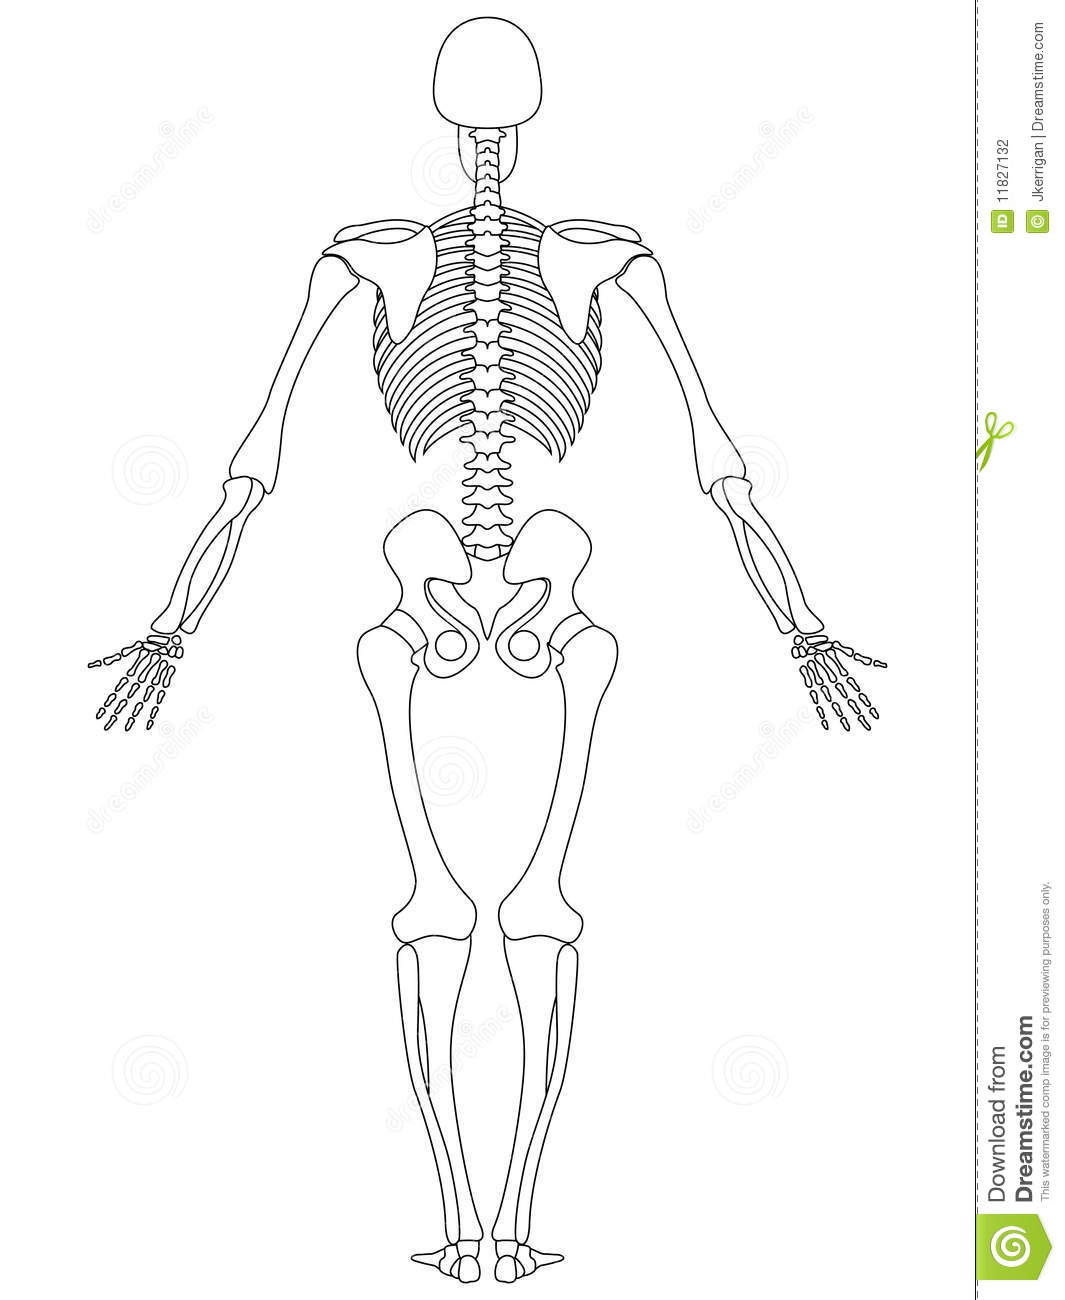 skeleton: rear view stock photography - image: 11827132, Skeleton